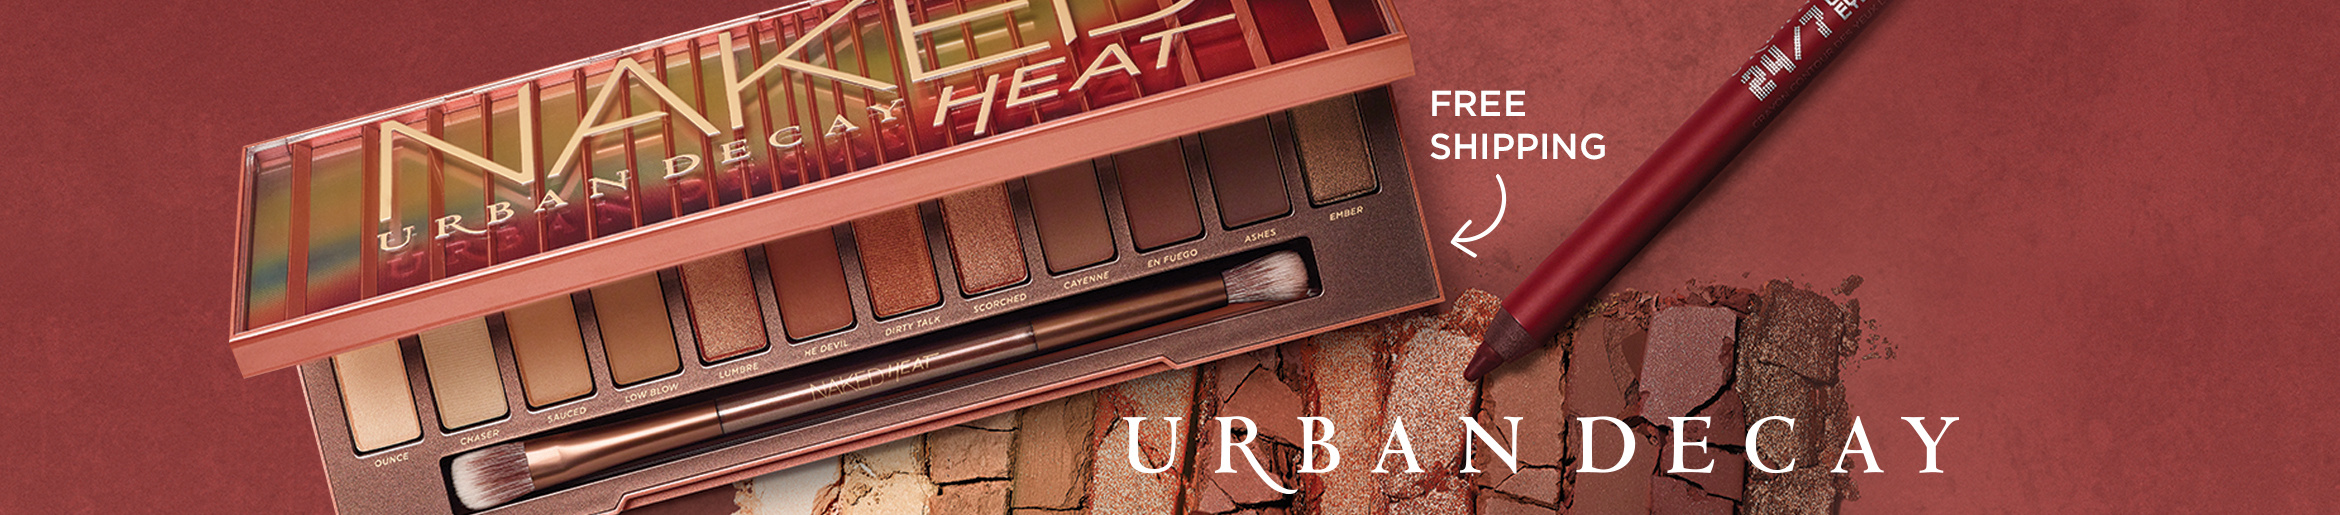 Urban Decay Is Here! Express yourself with bold & beloved beauty picks — Free Shipping